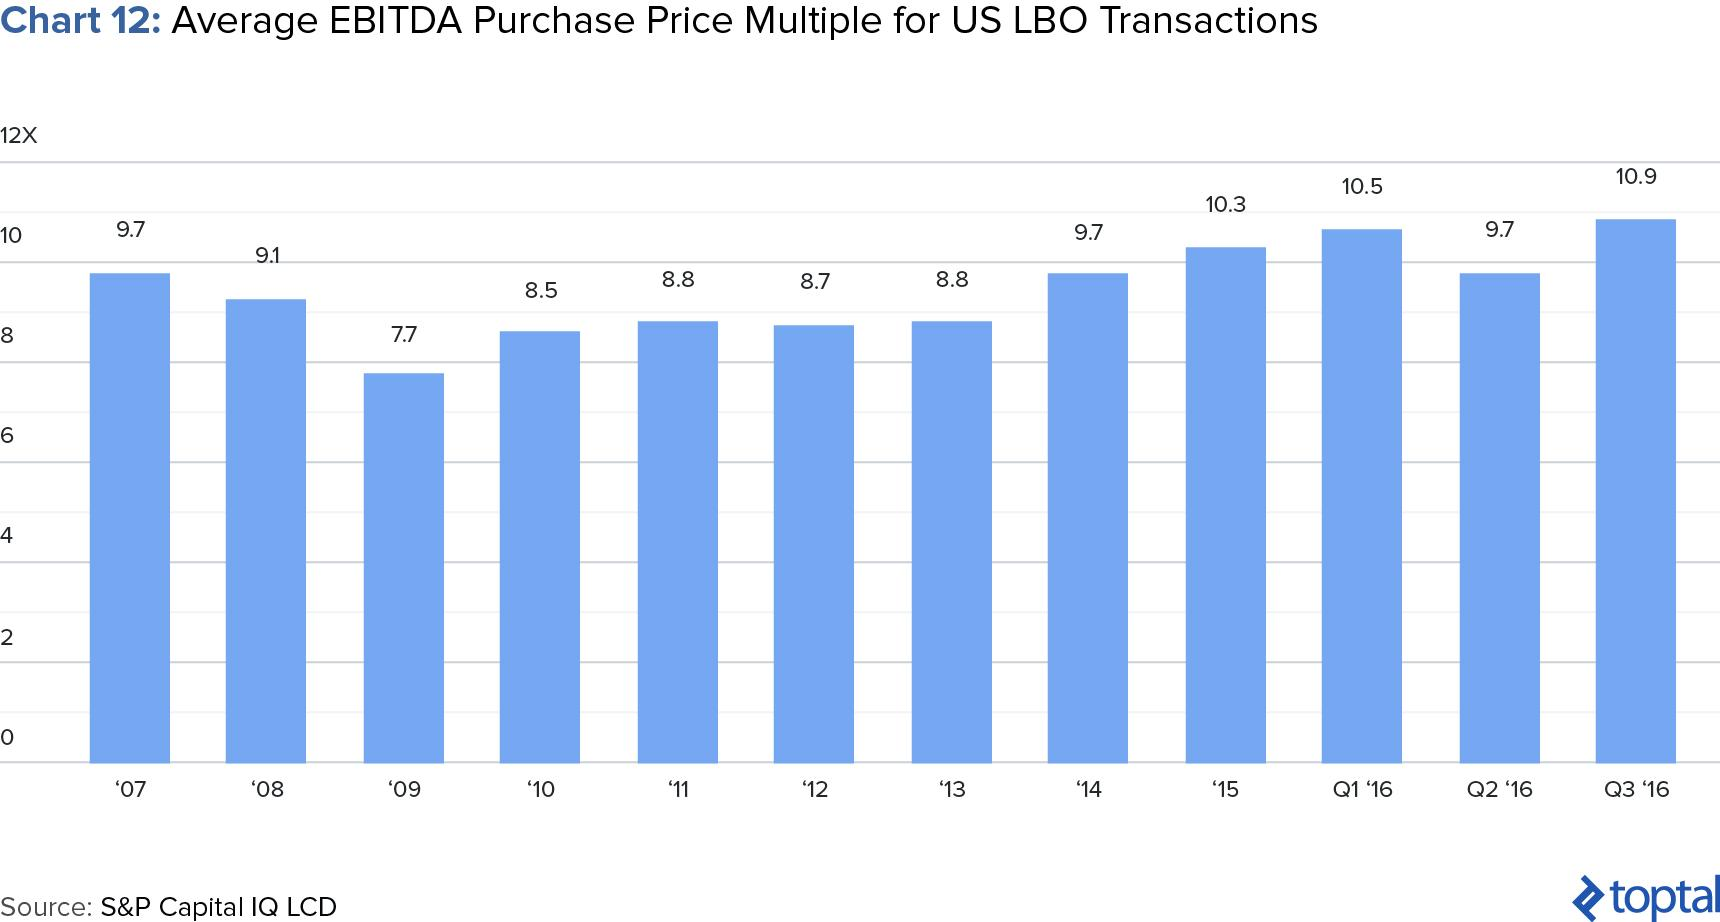 Chart 12: Average EBITDA Purchase Price Multiple for US LBO Transactions